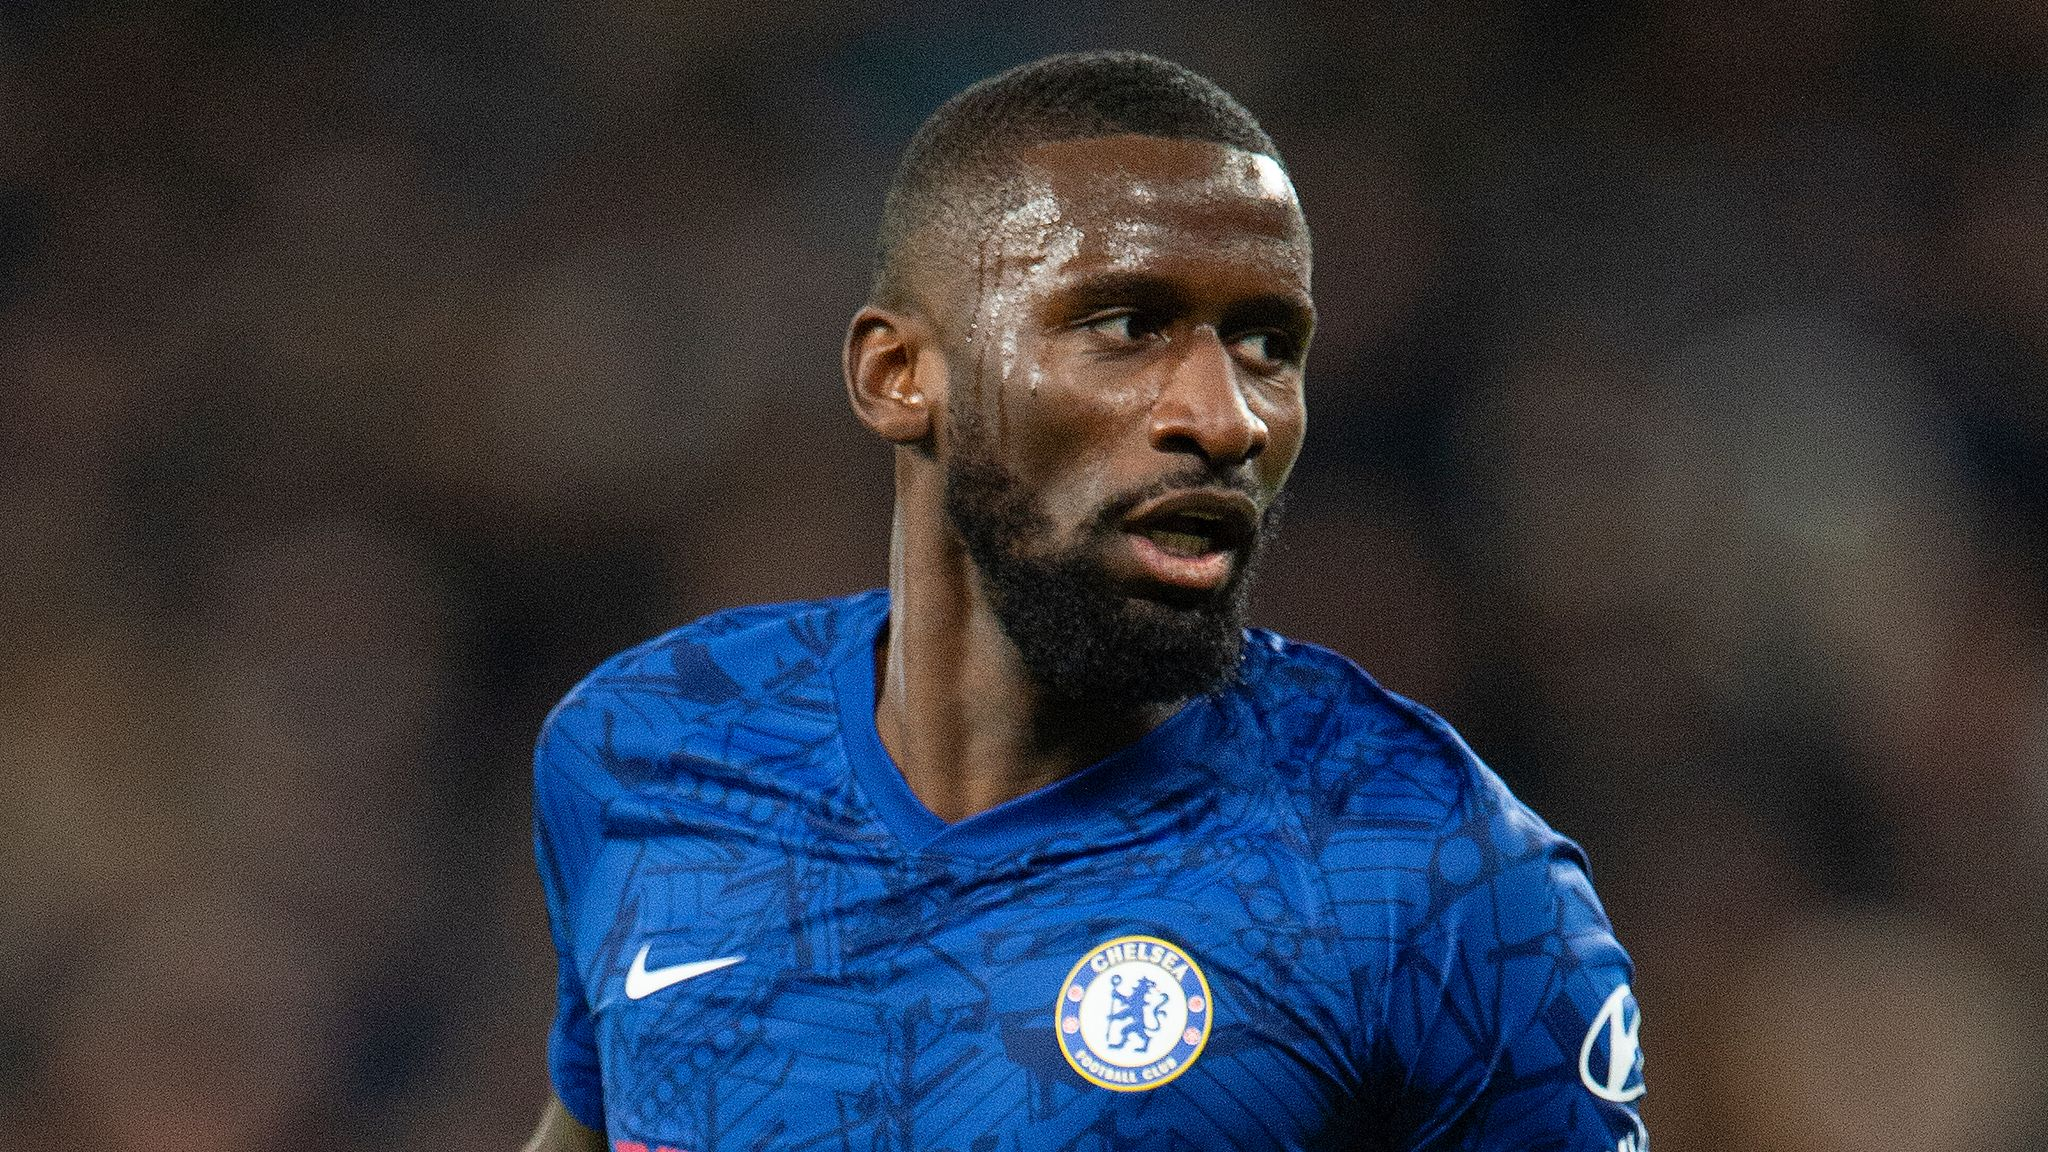 Antonio Rudiger alleged racist abuse investigation ended by Metropolitan Police   Football News   Sky Sports